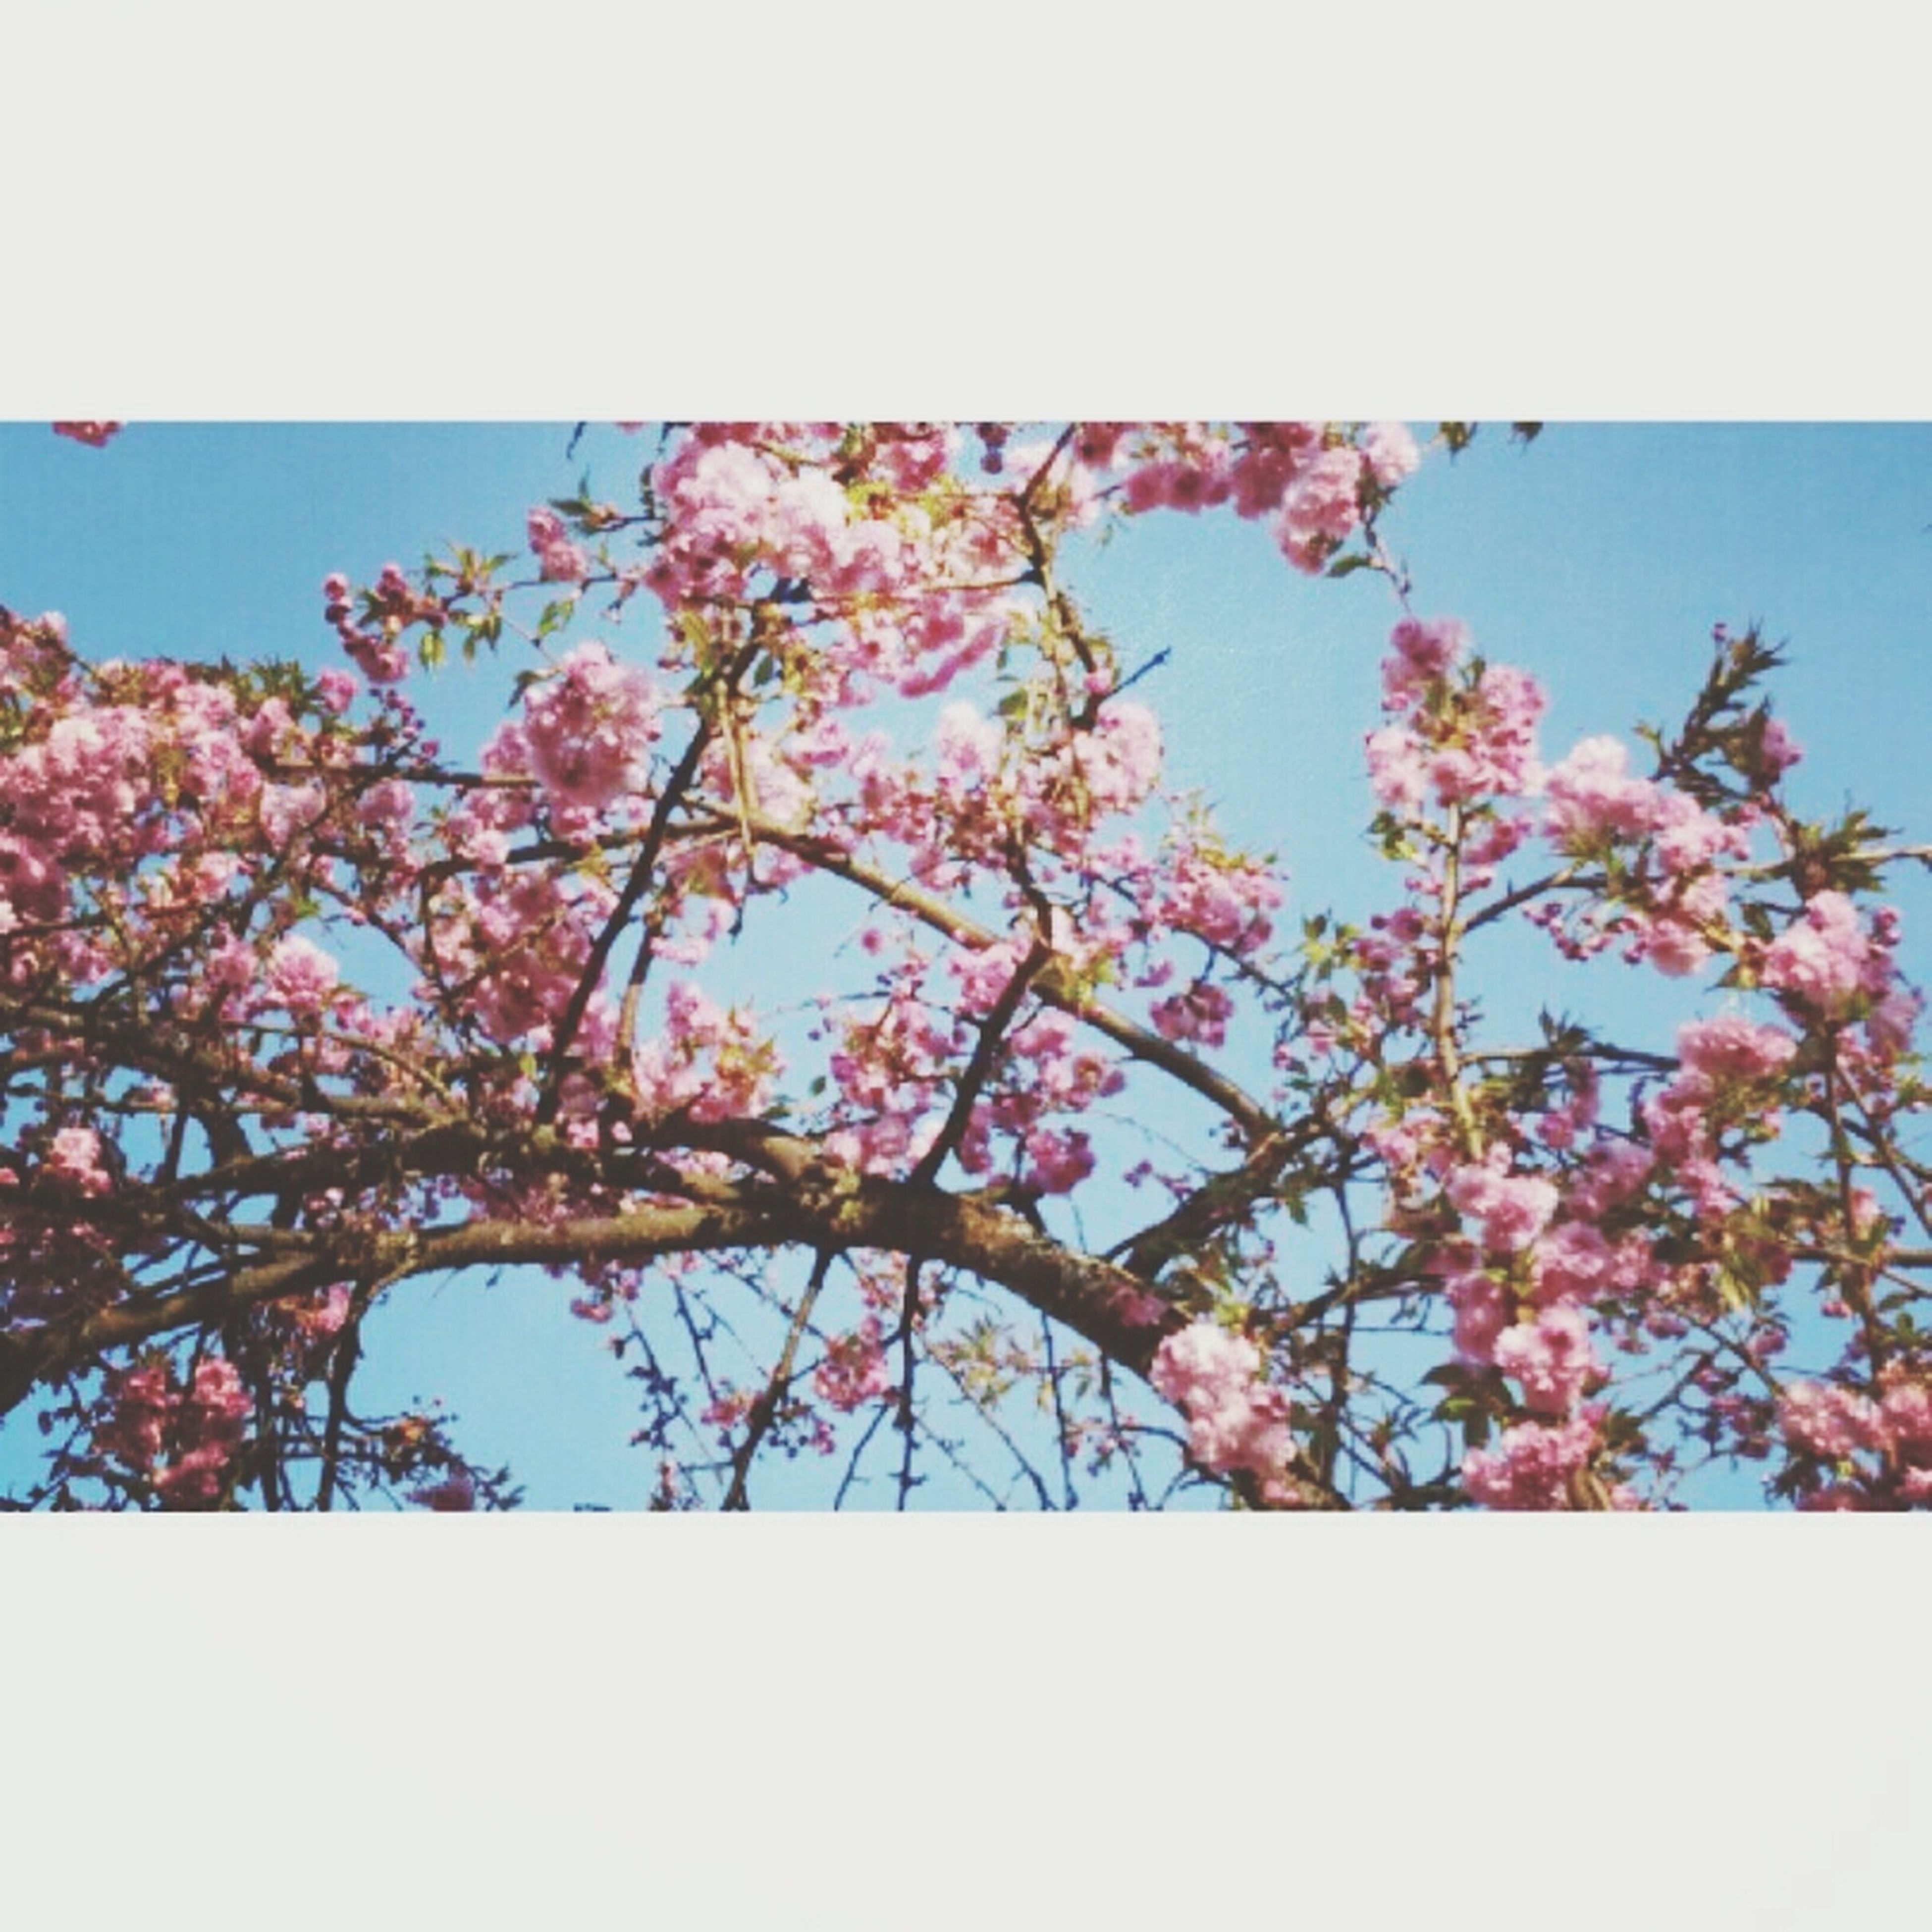 flower, freshness, growth, fragility, beauty in nature, low angle view, clear sky, tree, nature, branch, blossom, blooming, pink color, sky, in bloom, petal, blue, auto post production filter, springtime, day